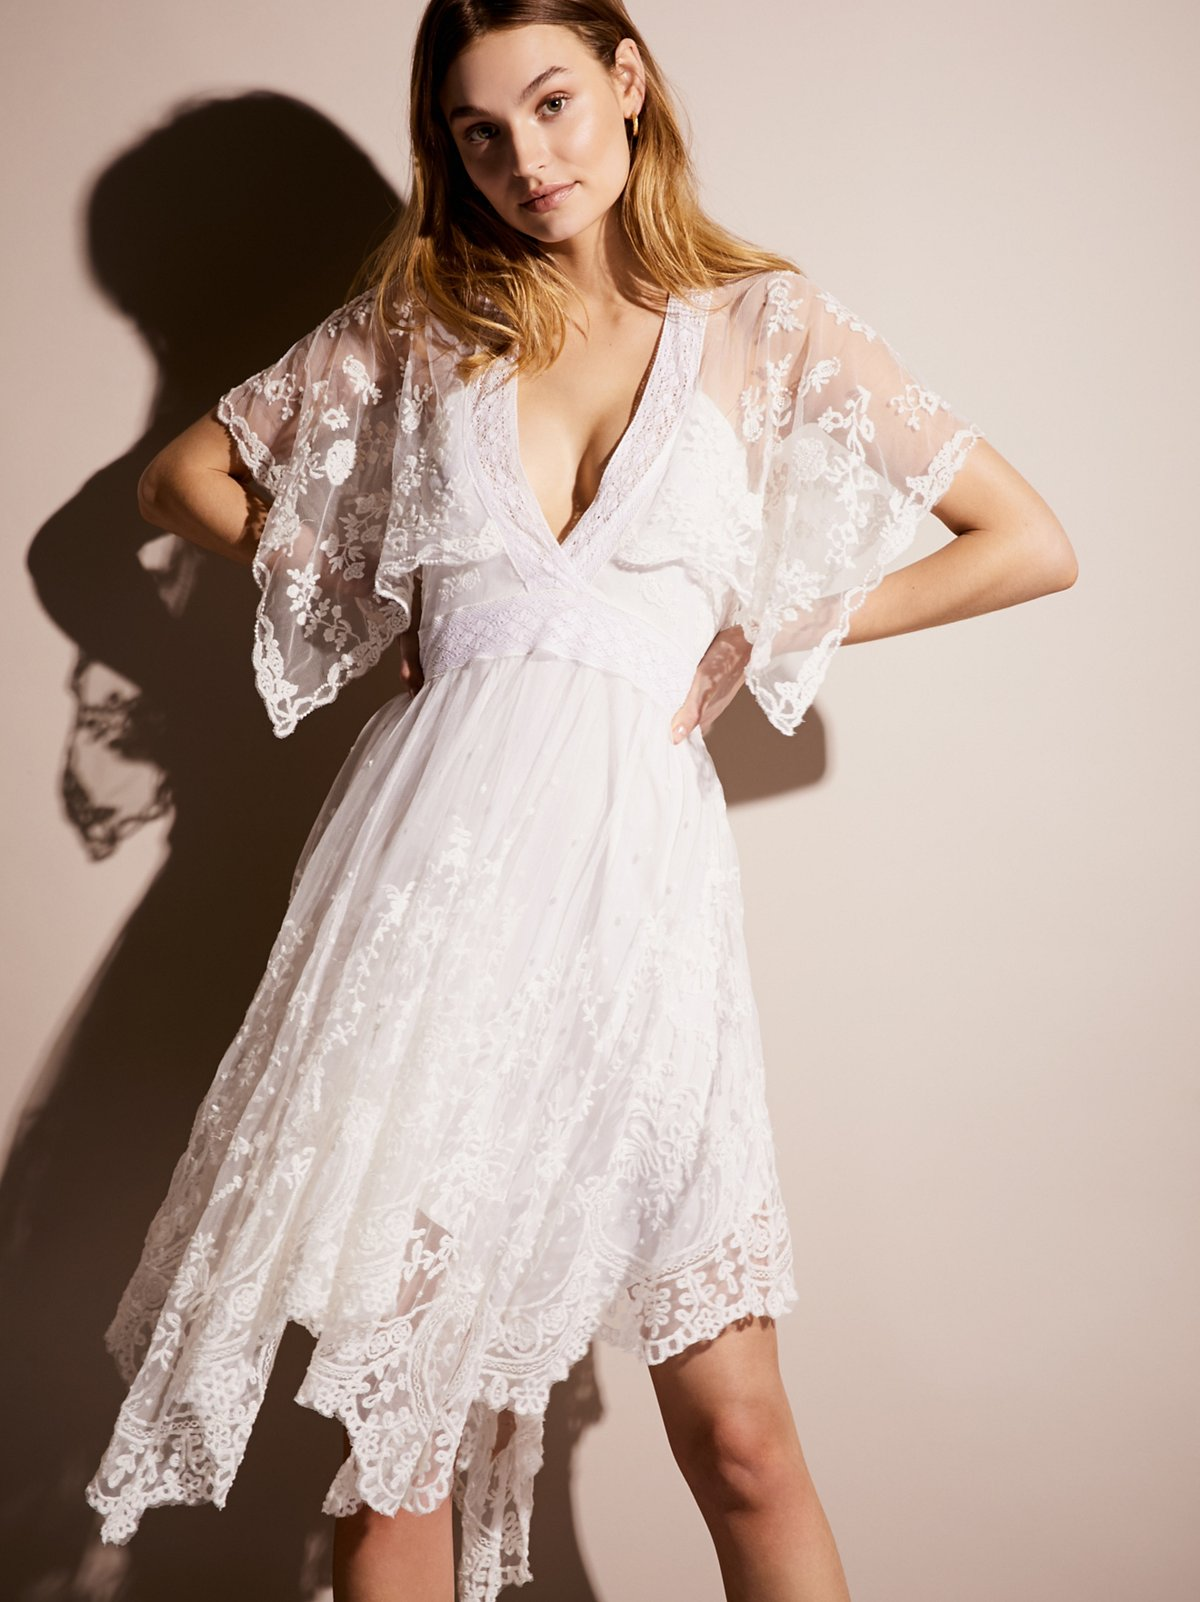 Mathilda Limited Edition White Gown